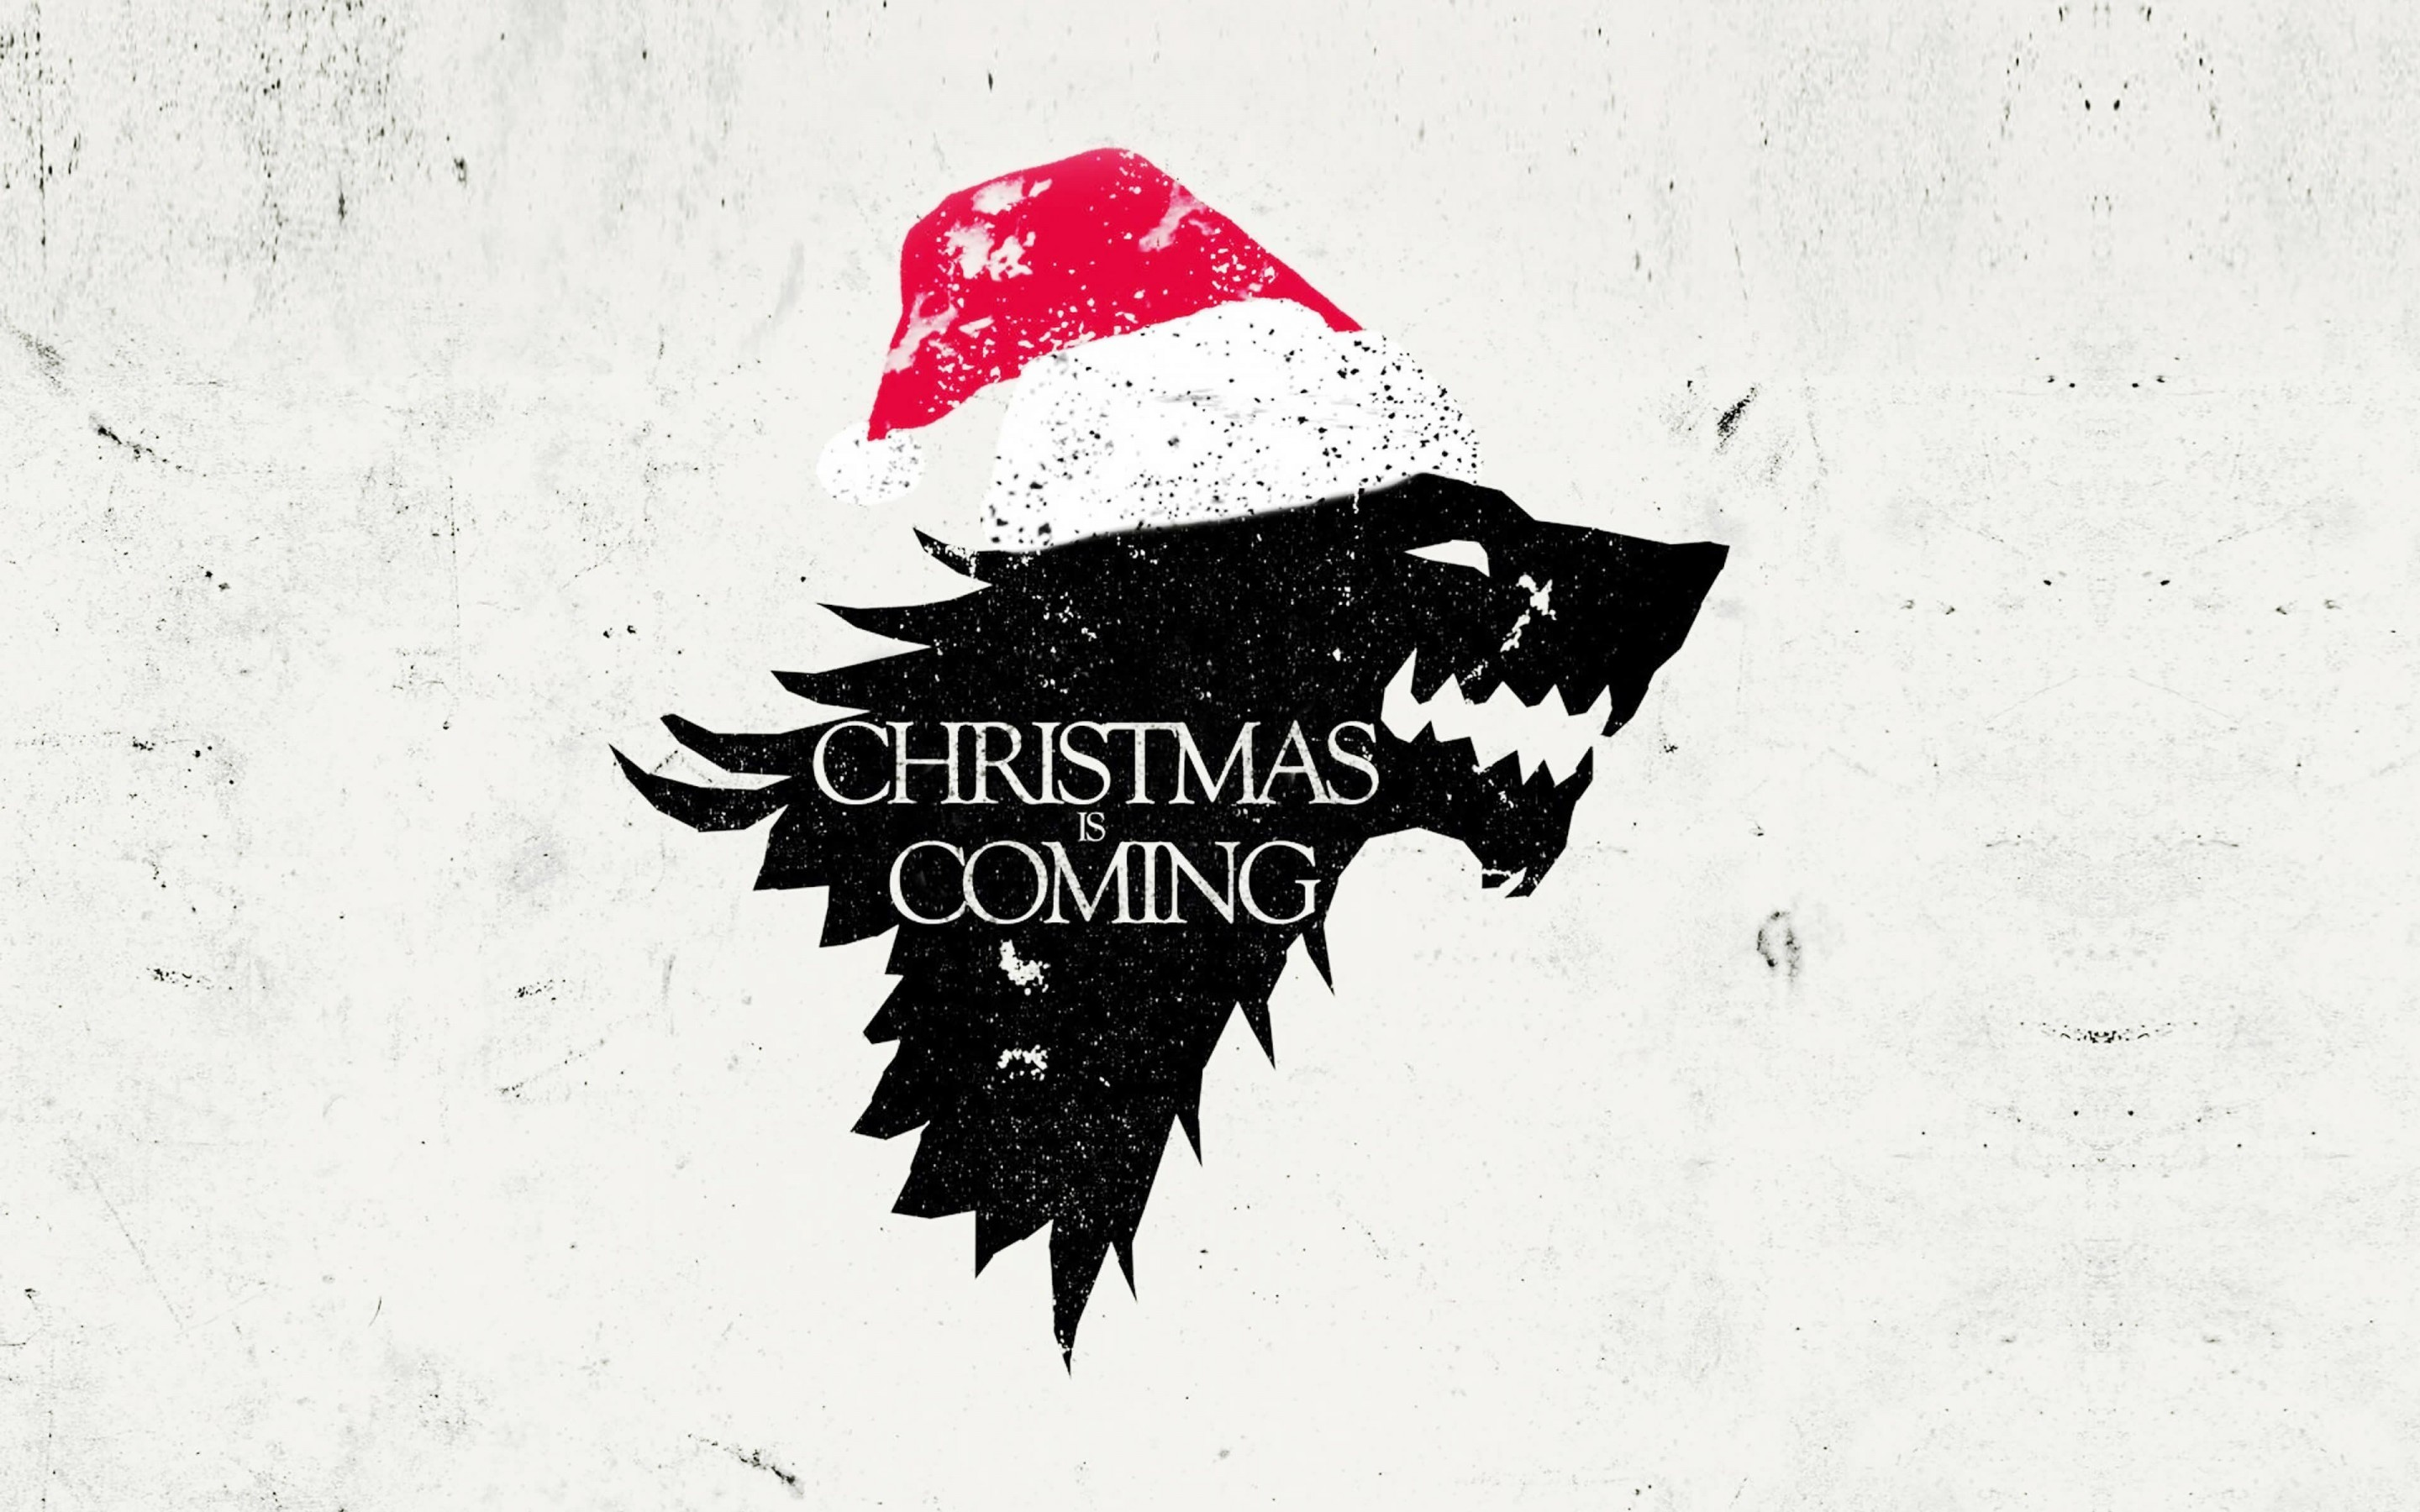 Christmas is Coming Wallpaper for Desktop 2880x1800